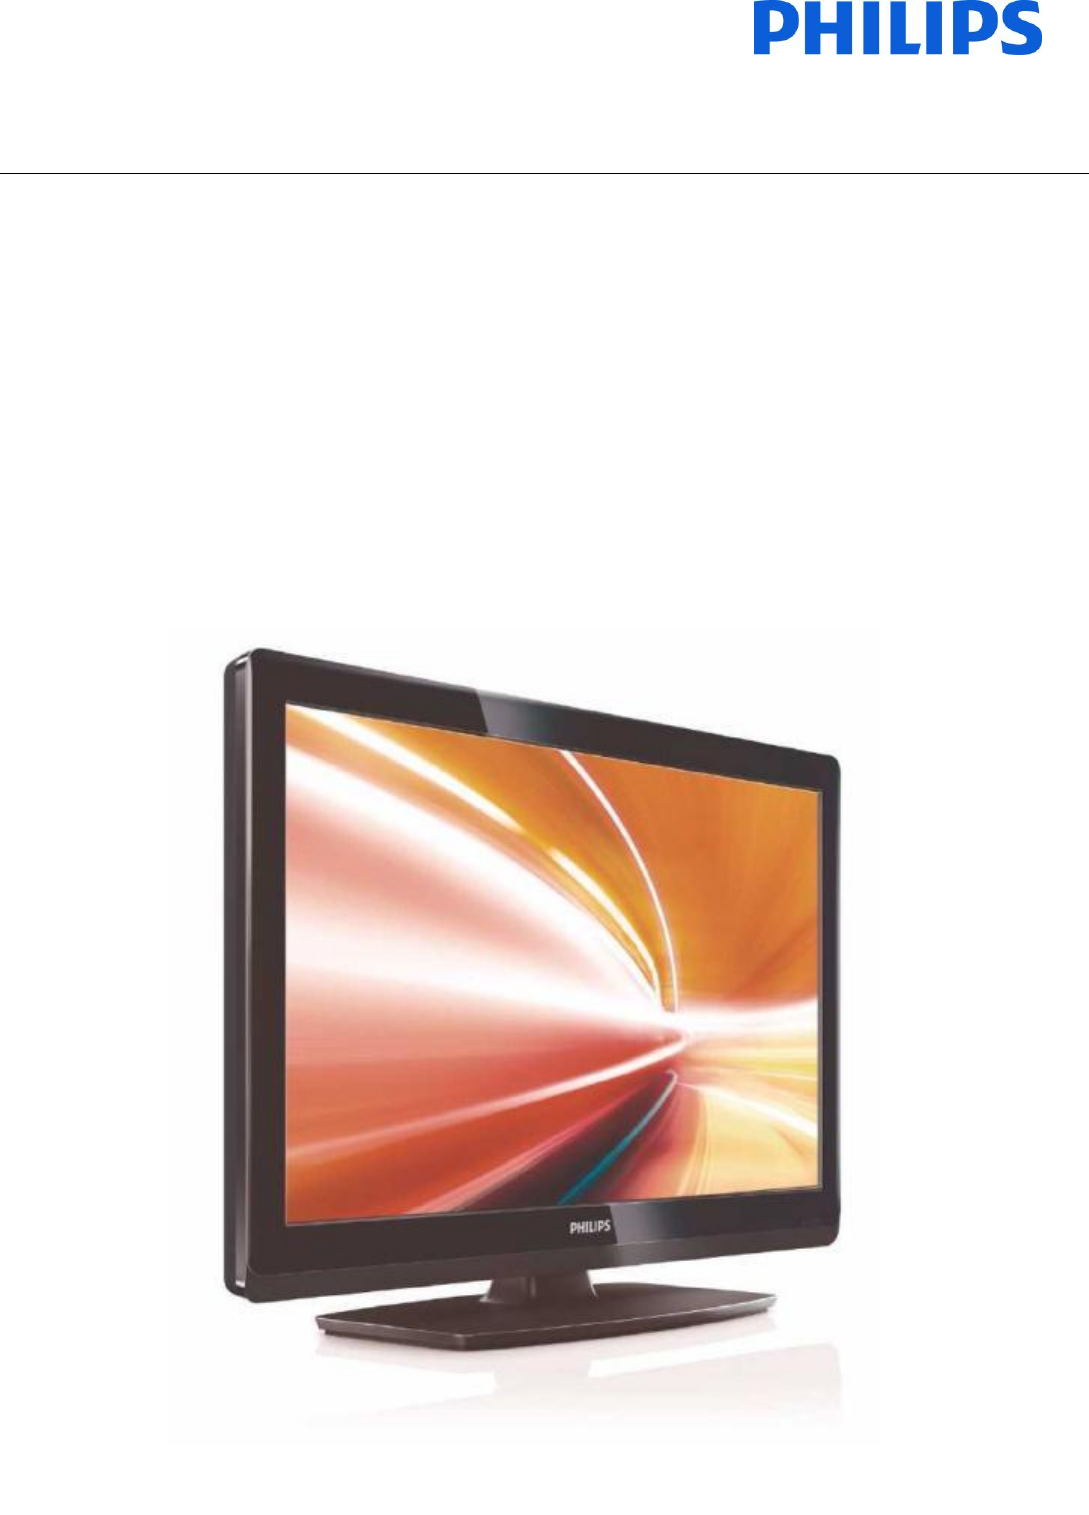 Philips Flat Panel Television 19HFL3233D/10 User Guide